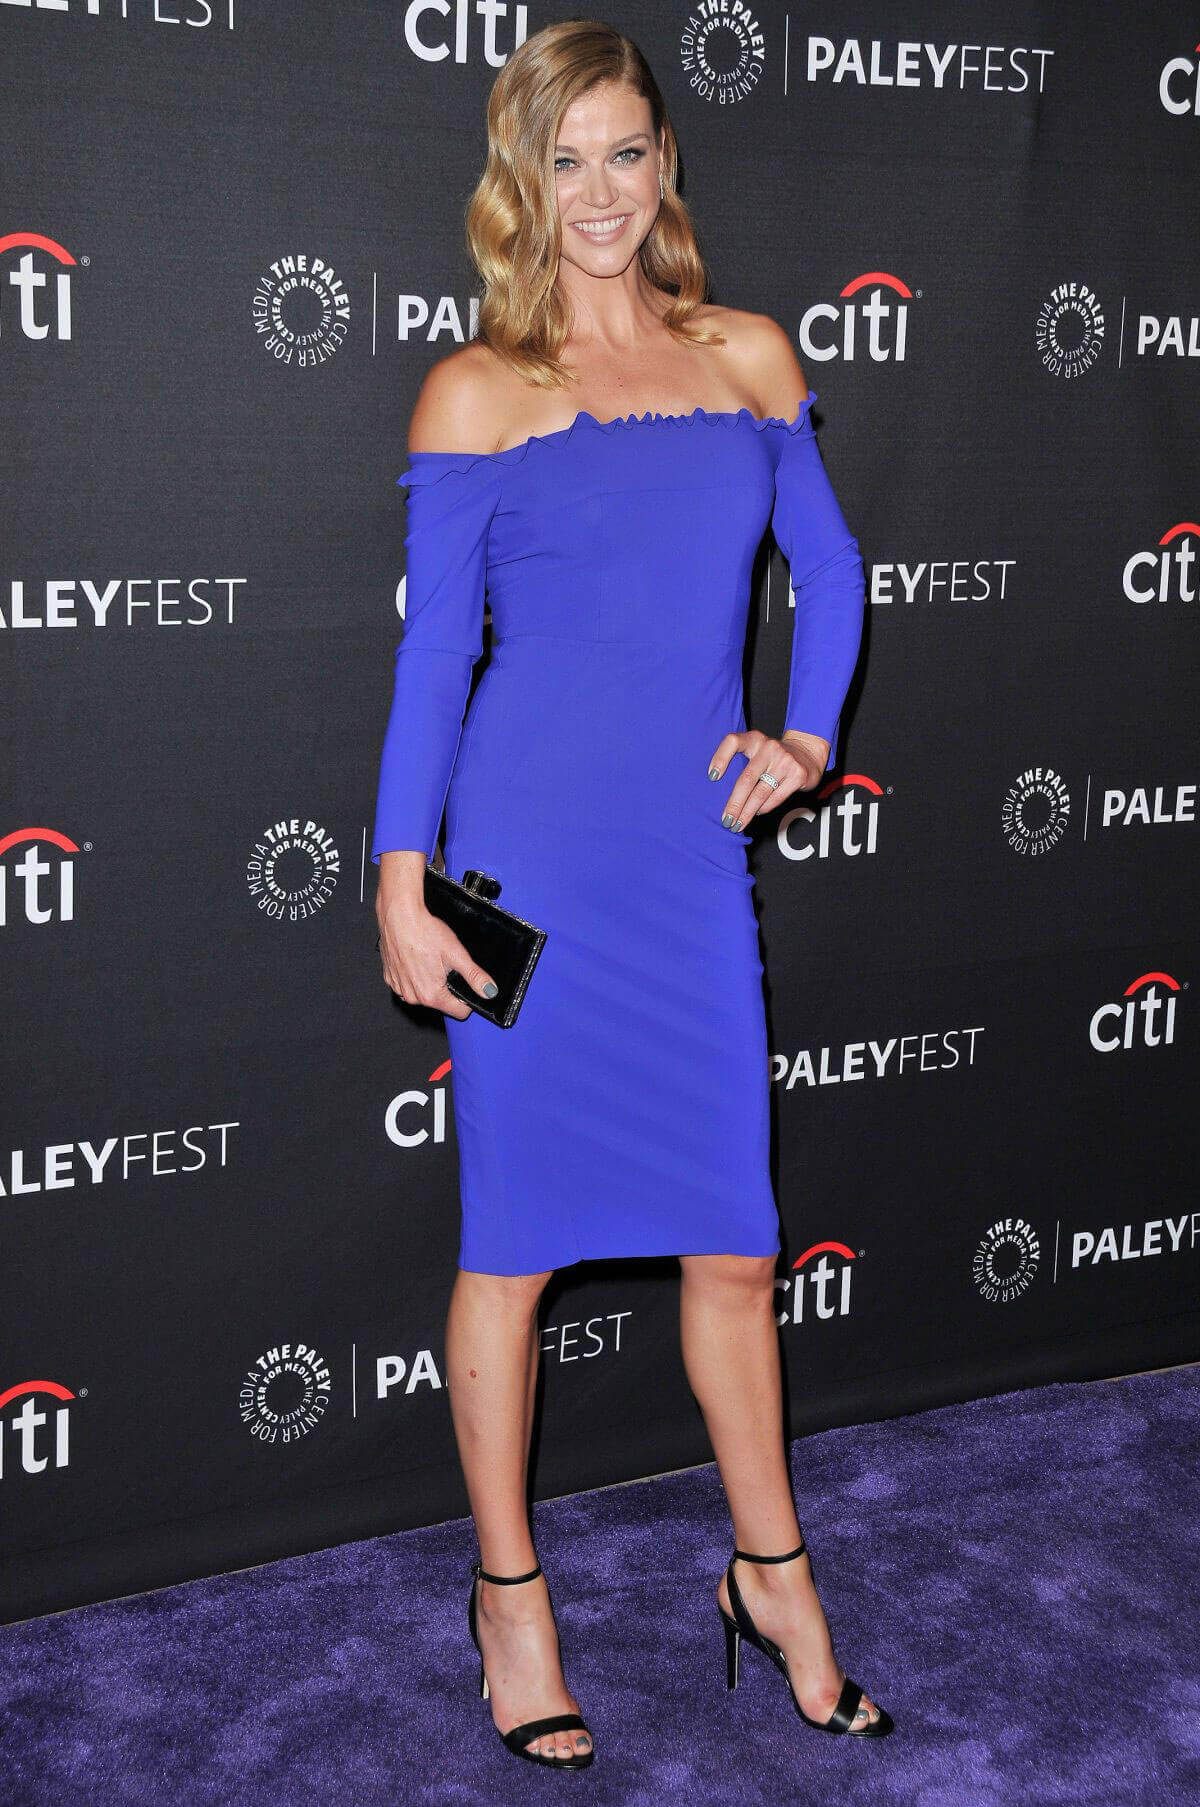 Adrianne Palicki Stills at 11th Annual Paleyfest The Orville Event in Beverly Hills